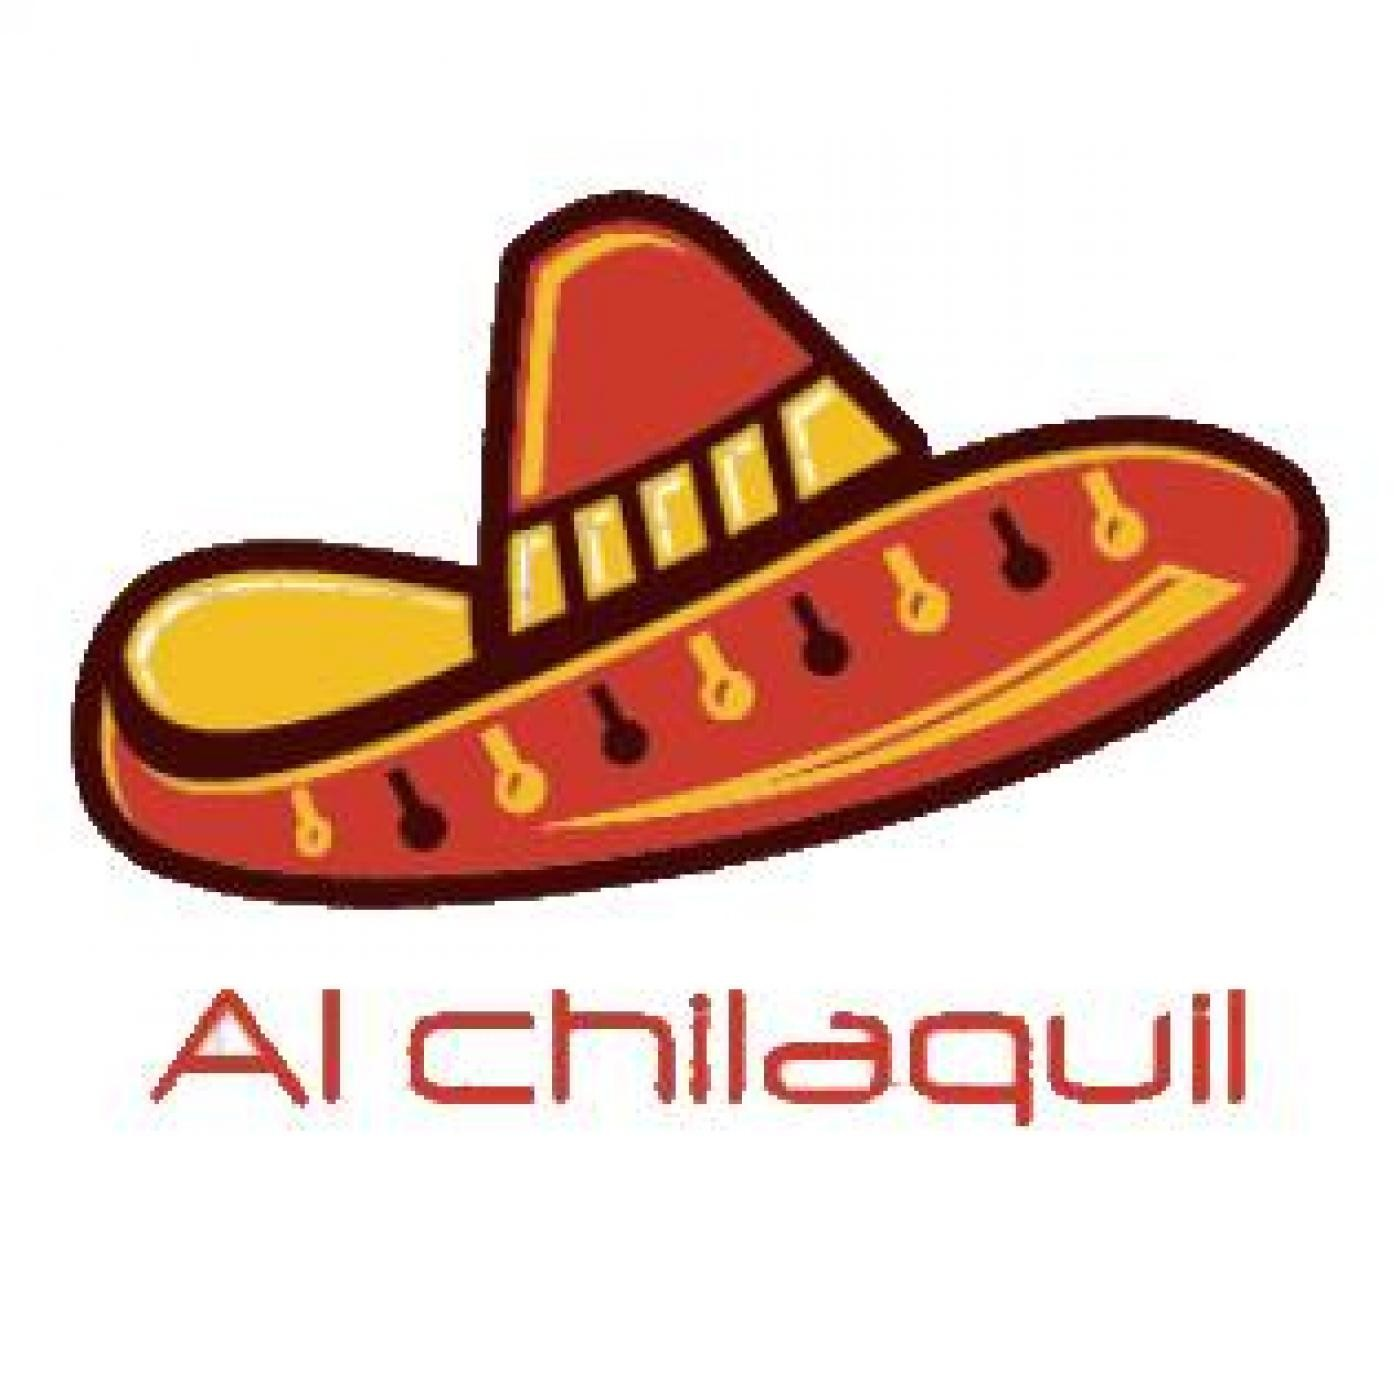 Al chilaquil. Podcast 2